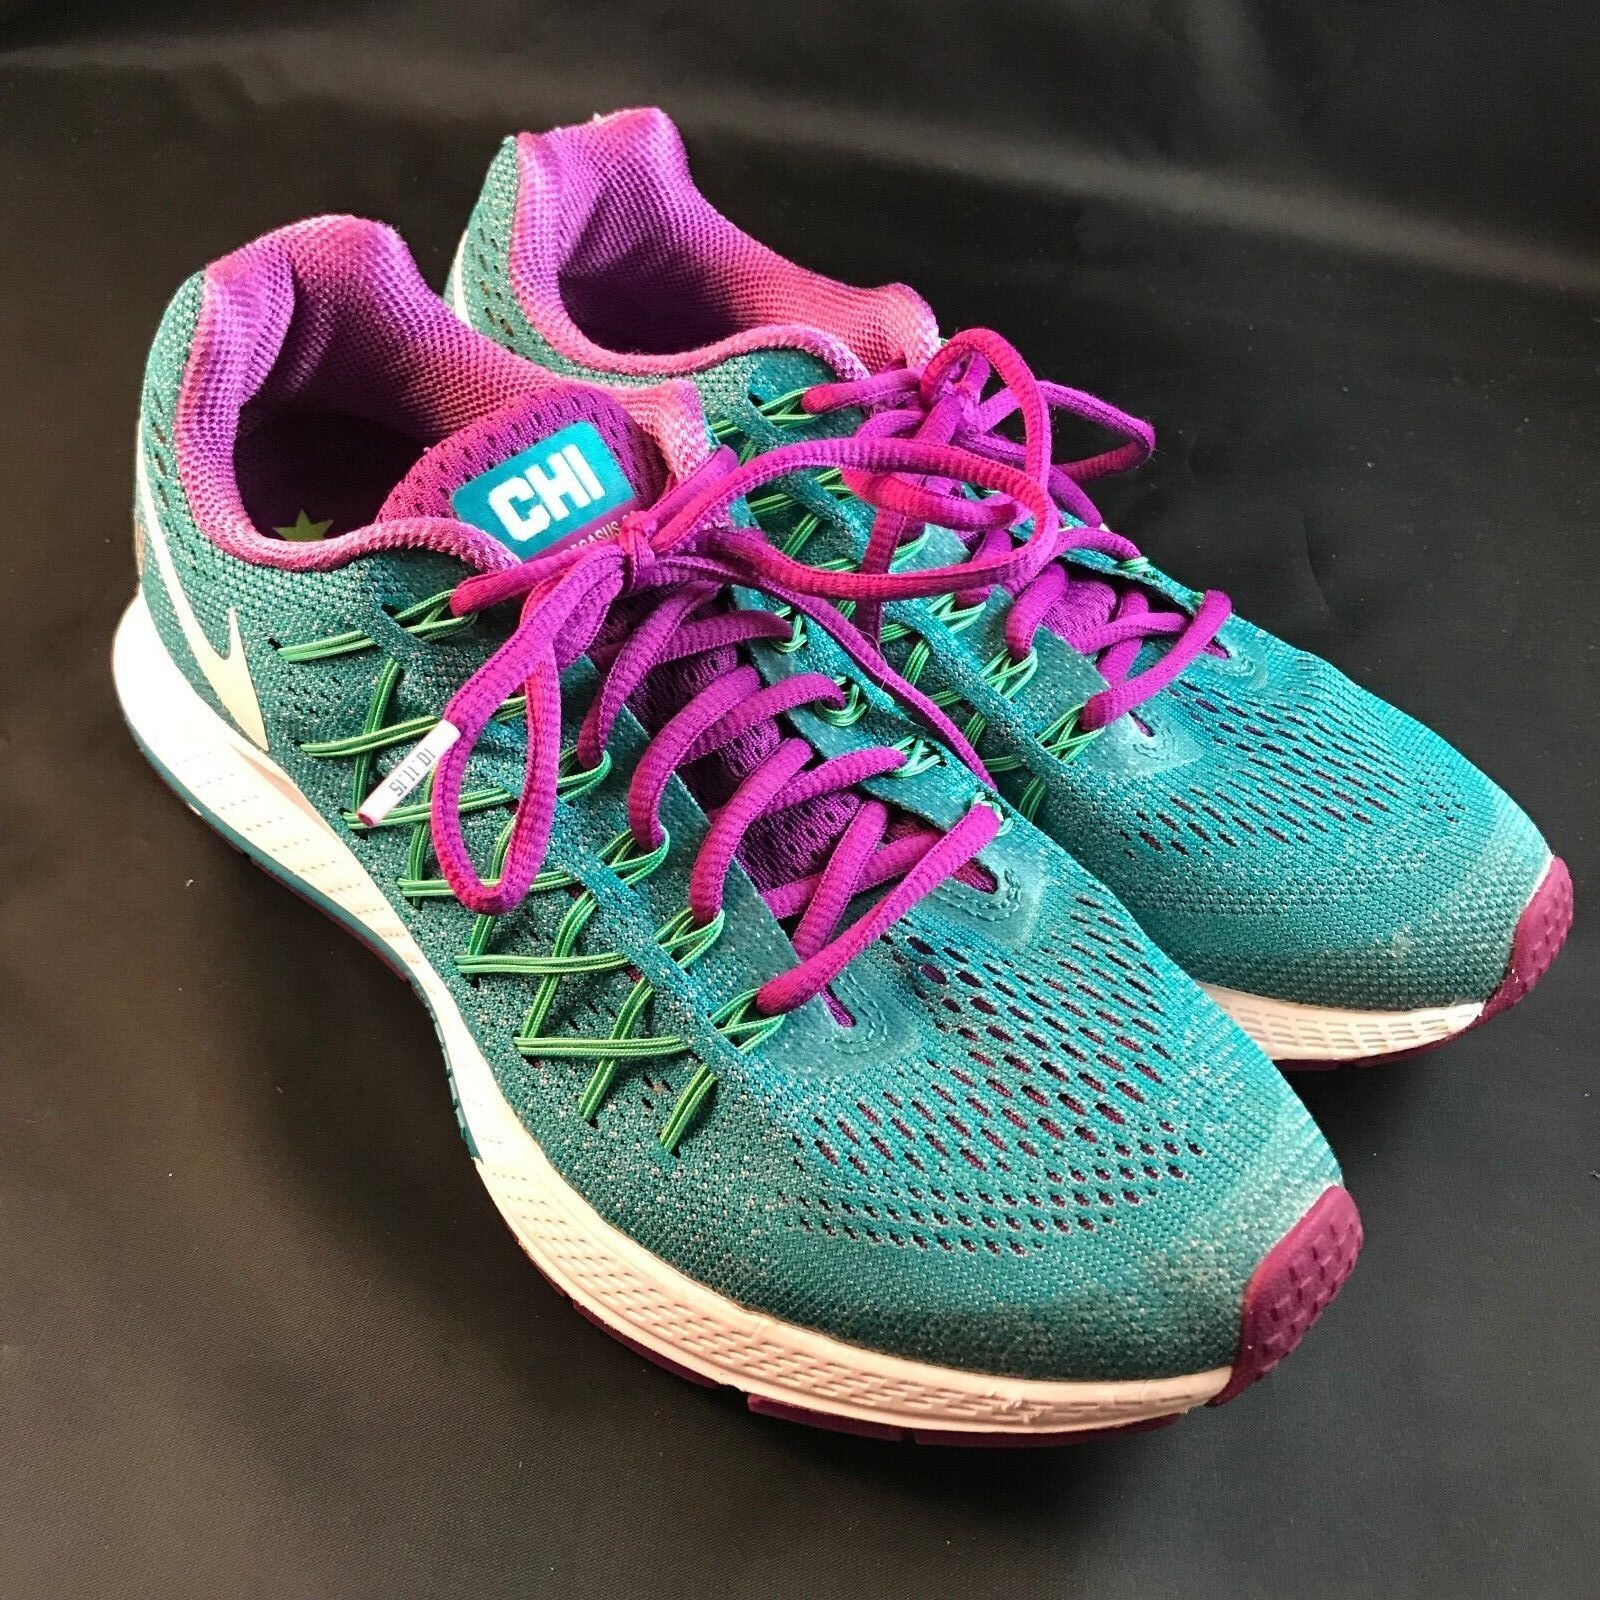 Nike air zoom pegasus + edition 32 chicago marathon edition + Blau frauen 9, 40 euro 0bfb14